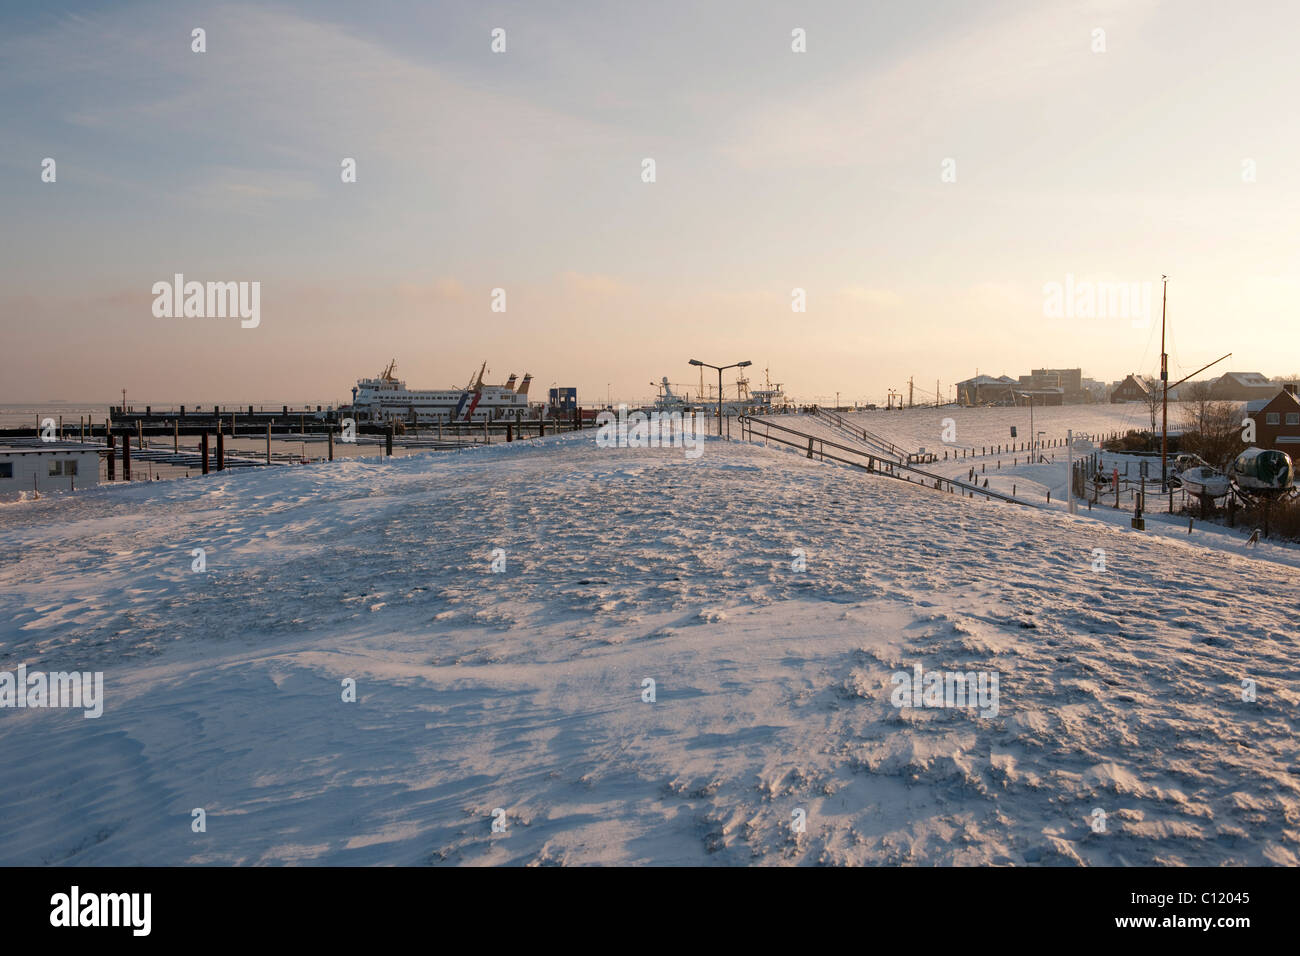 Even in deepest winter the ferry service between the mainland and the North Sea island of Foehr is maintained, here - Stock Image